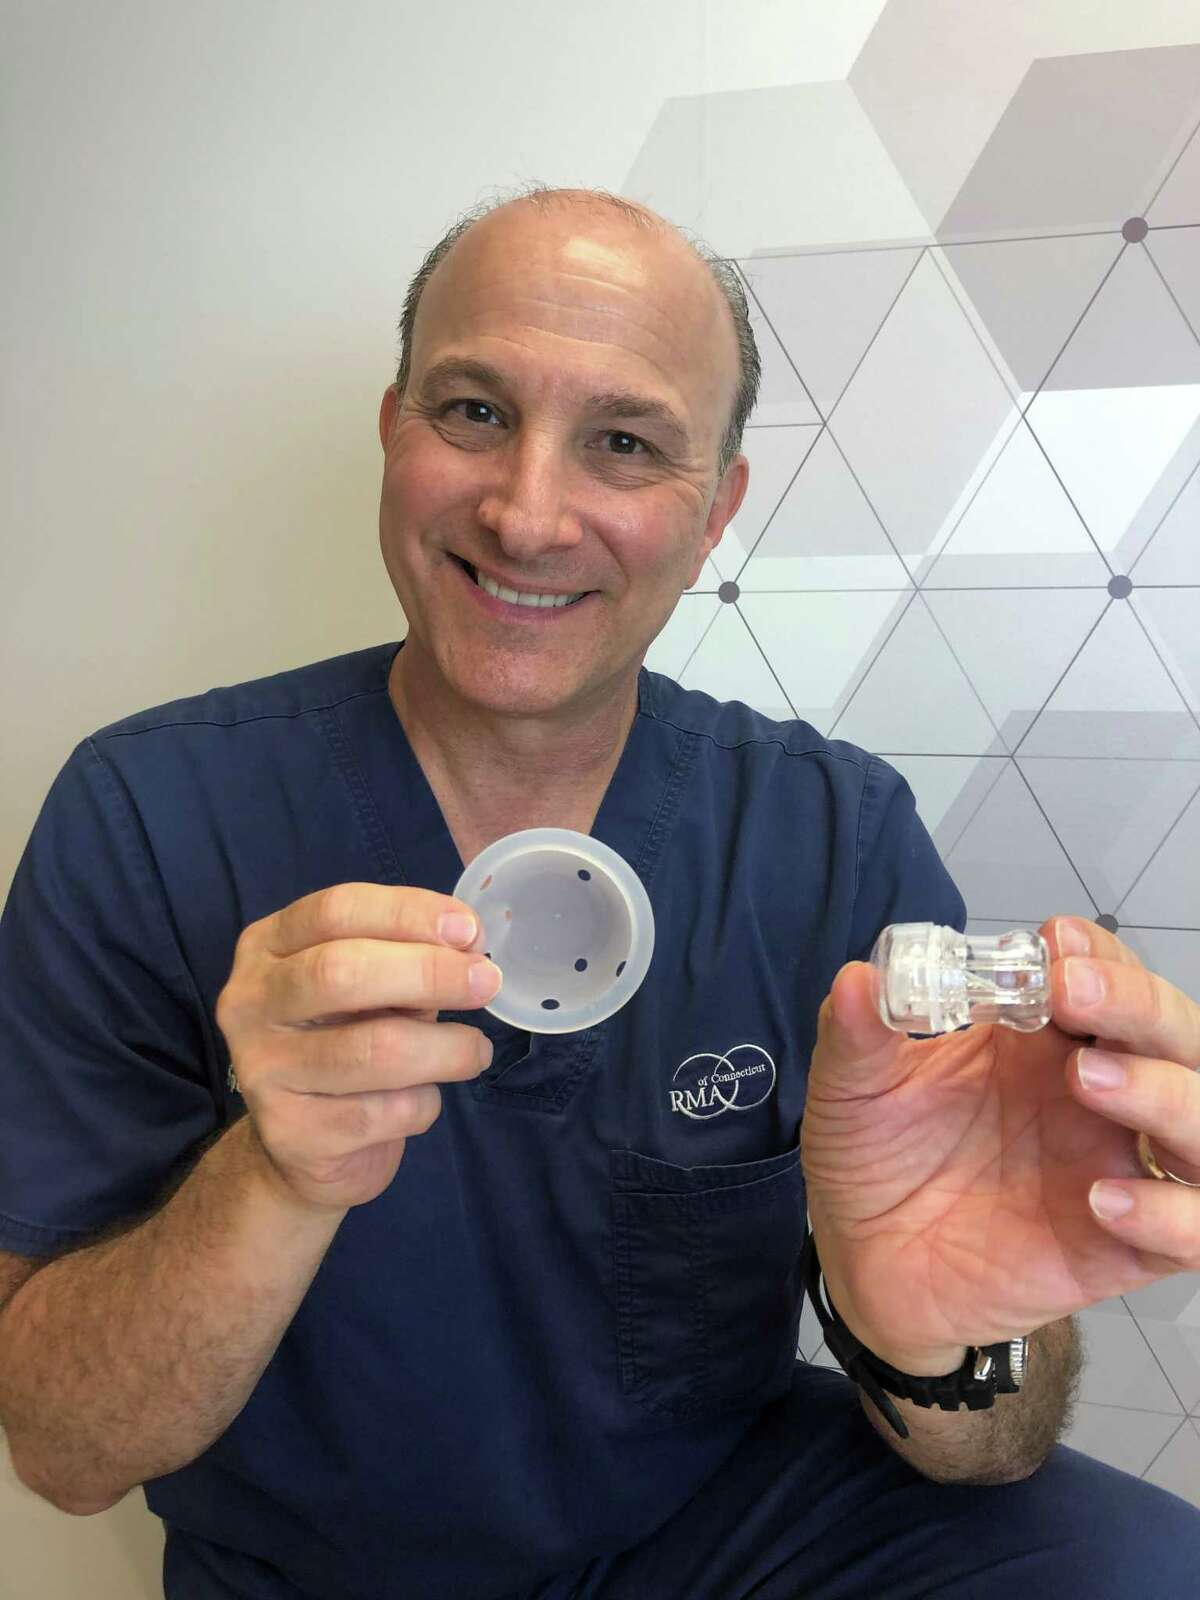 Doctor and Westport resident Spencer Richlin with INVOCELL, a new way of treating infertility offered at Reproductive Medicine Associates of Connecticut.